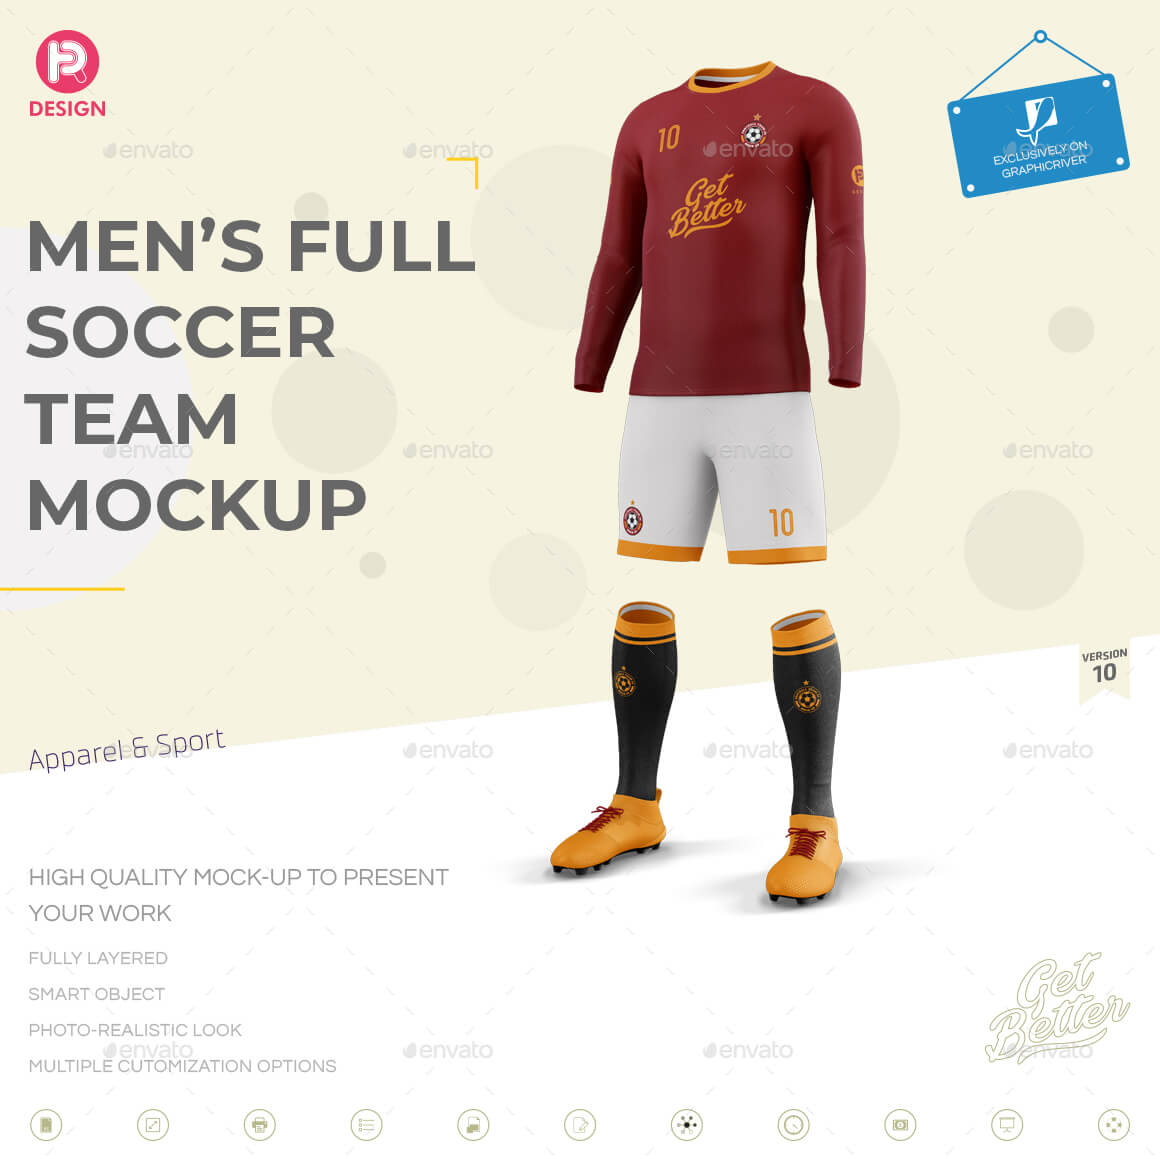 Men's Full Soccer Team Kit mockup V10